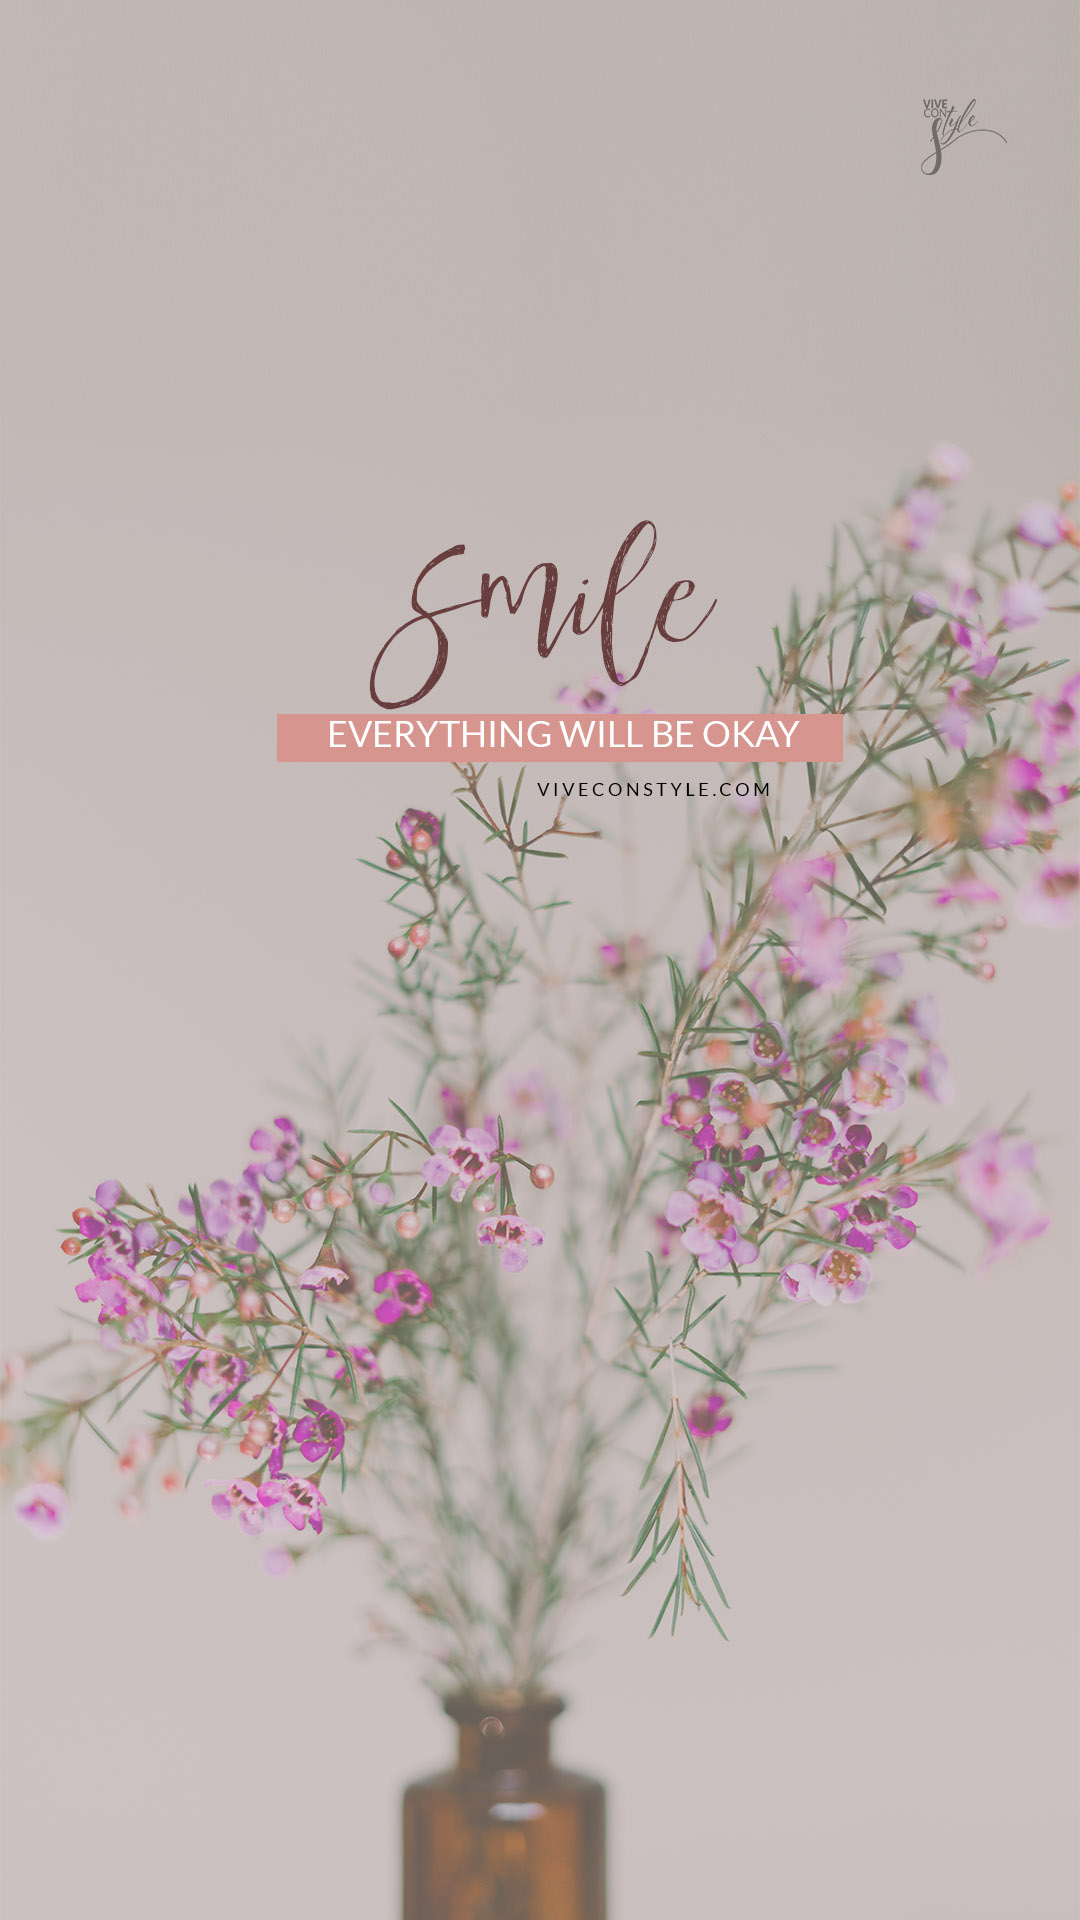 Smile everything will be okay mobile wallpaper for iphone and Android